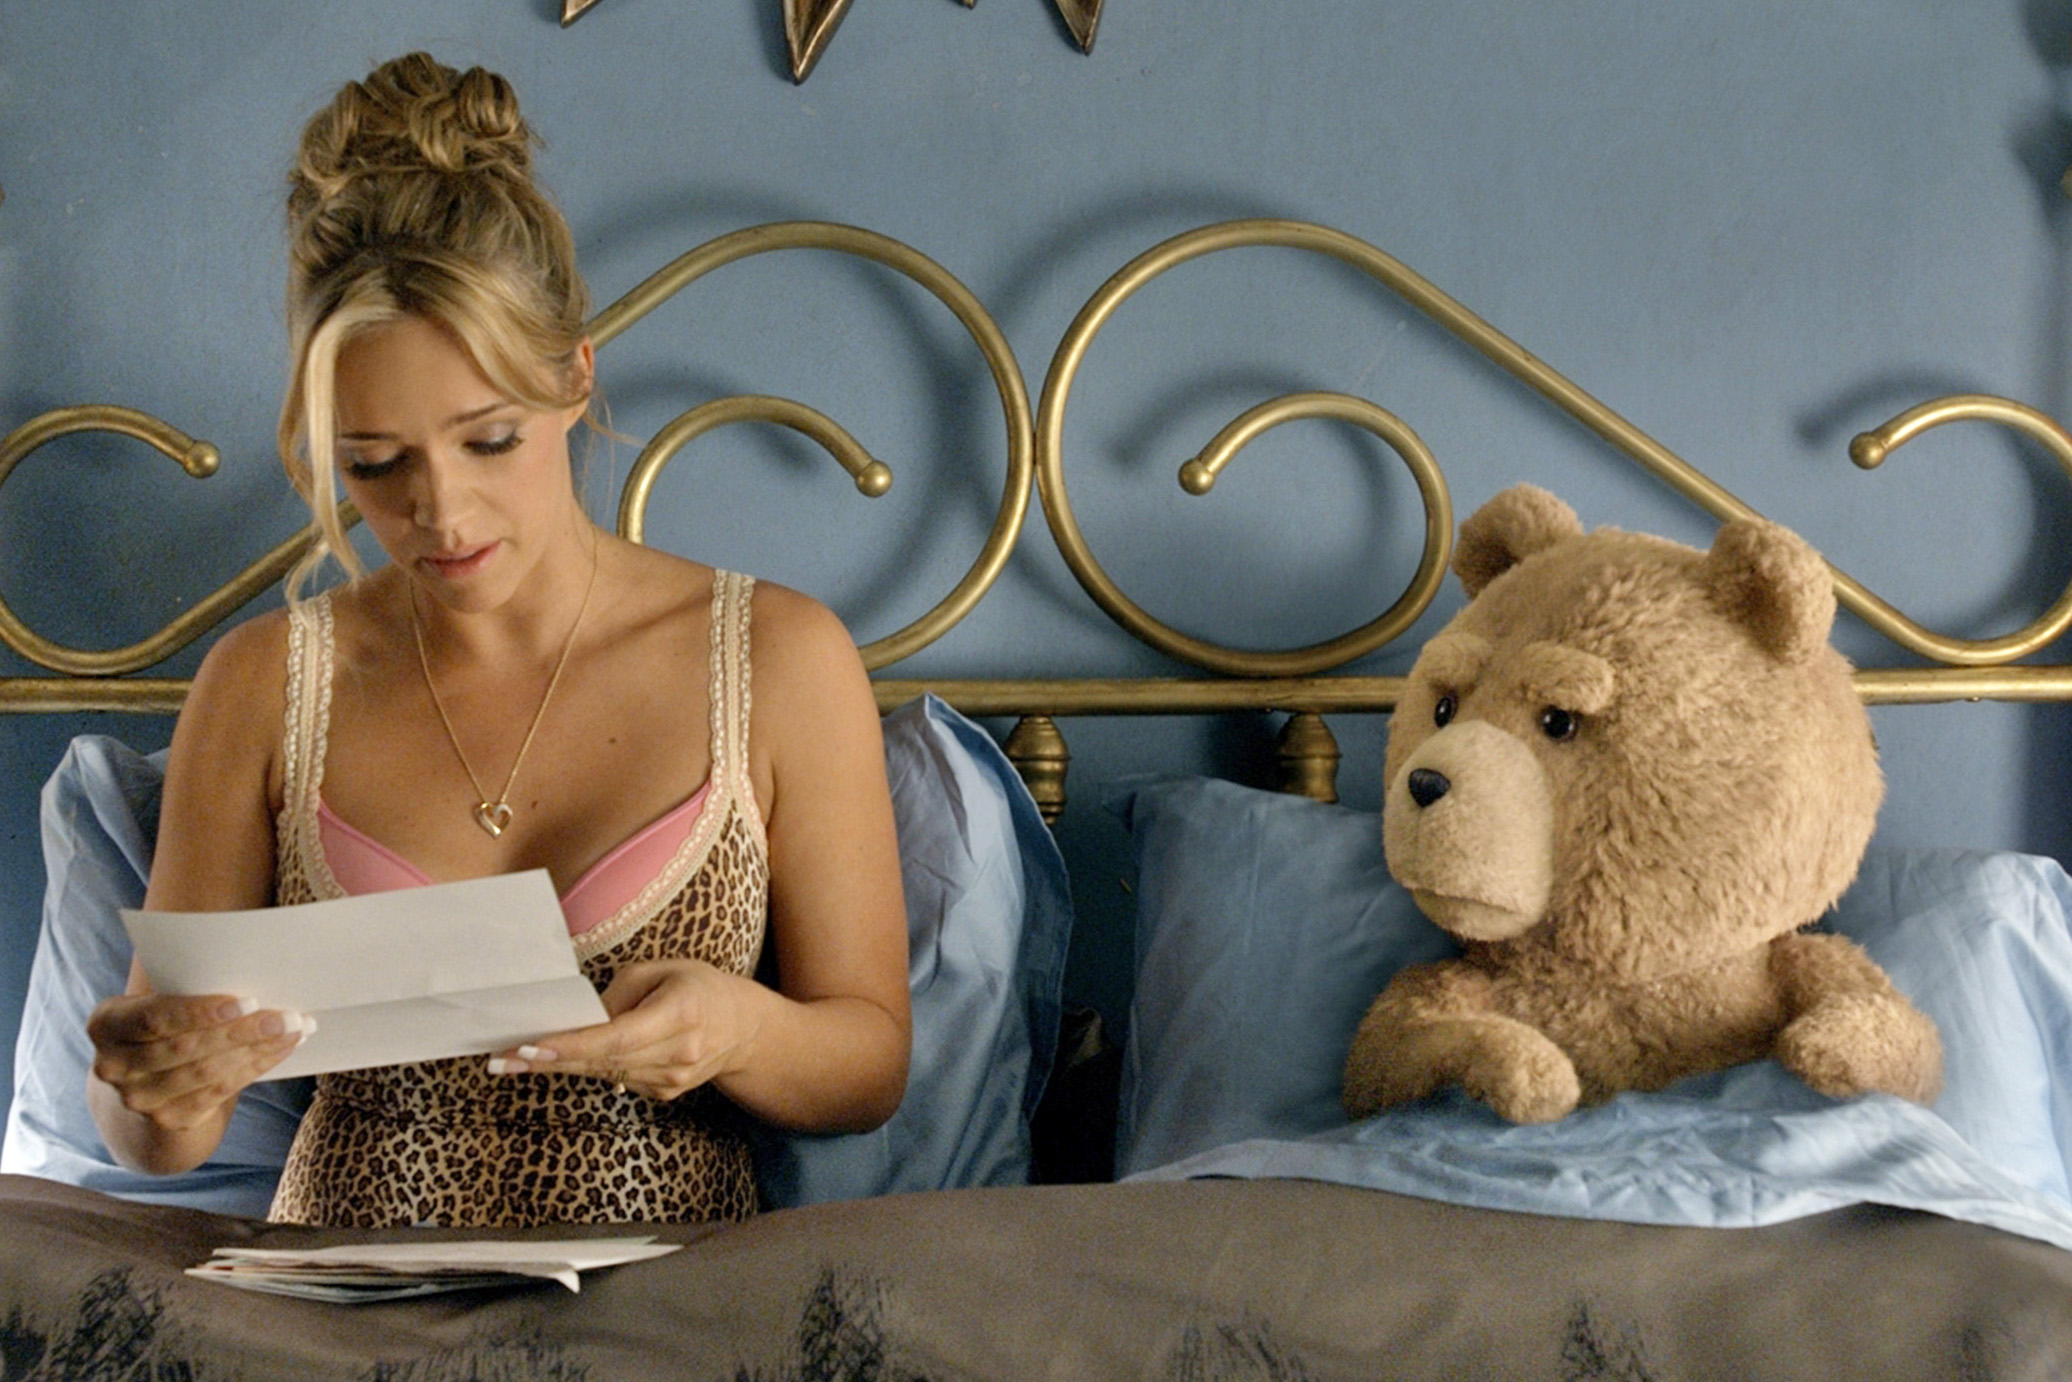 Film Still Tami-Lynn (JESSICA BARTH) and Ted (SETH MACFARLANE) are now married in ?Ted 2?, Universal Pictures and Media Rights Capital?s follow-up to the highest-grossing original R-rated comedy of all time.  MacFarlane returns as writer, director and voice star of the film.